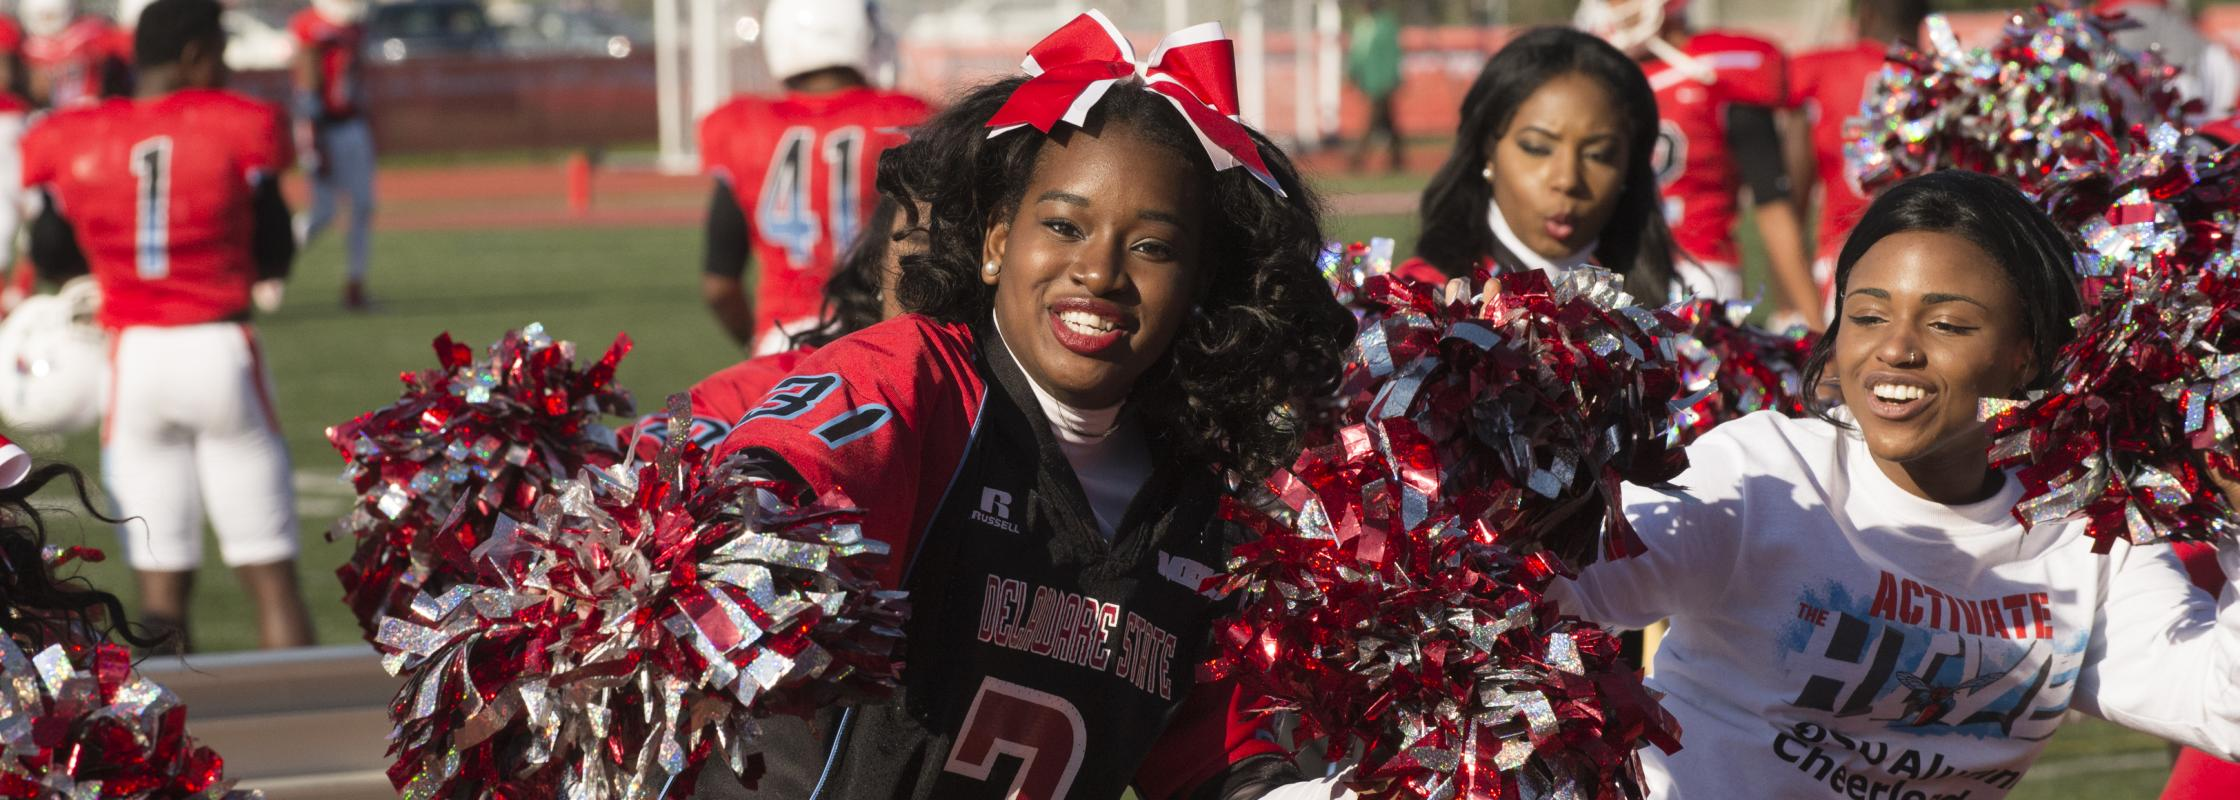 homecoming delaware state university